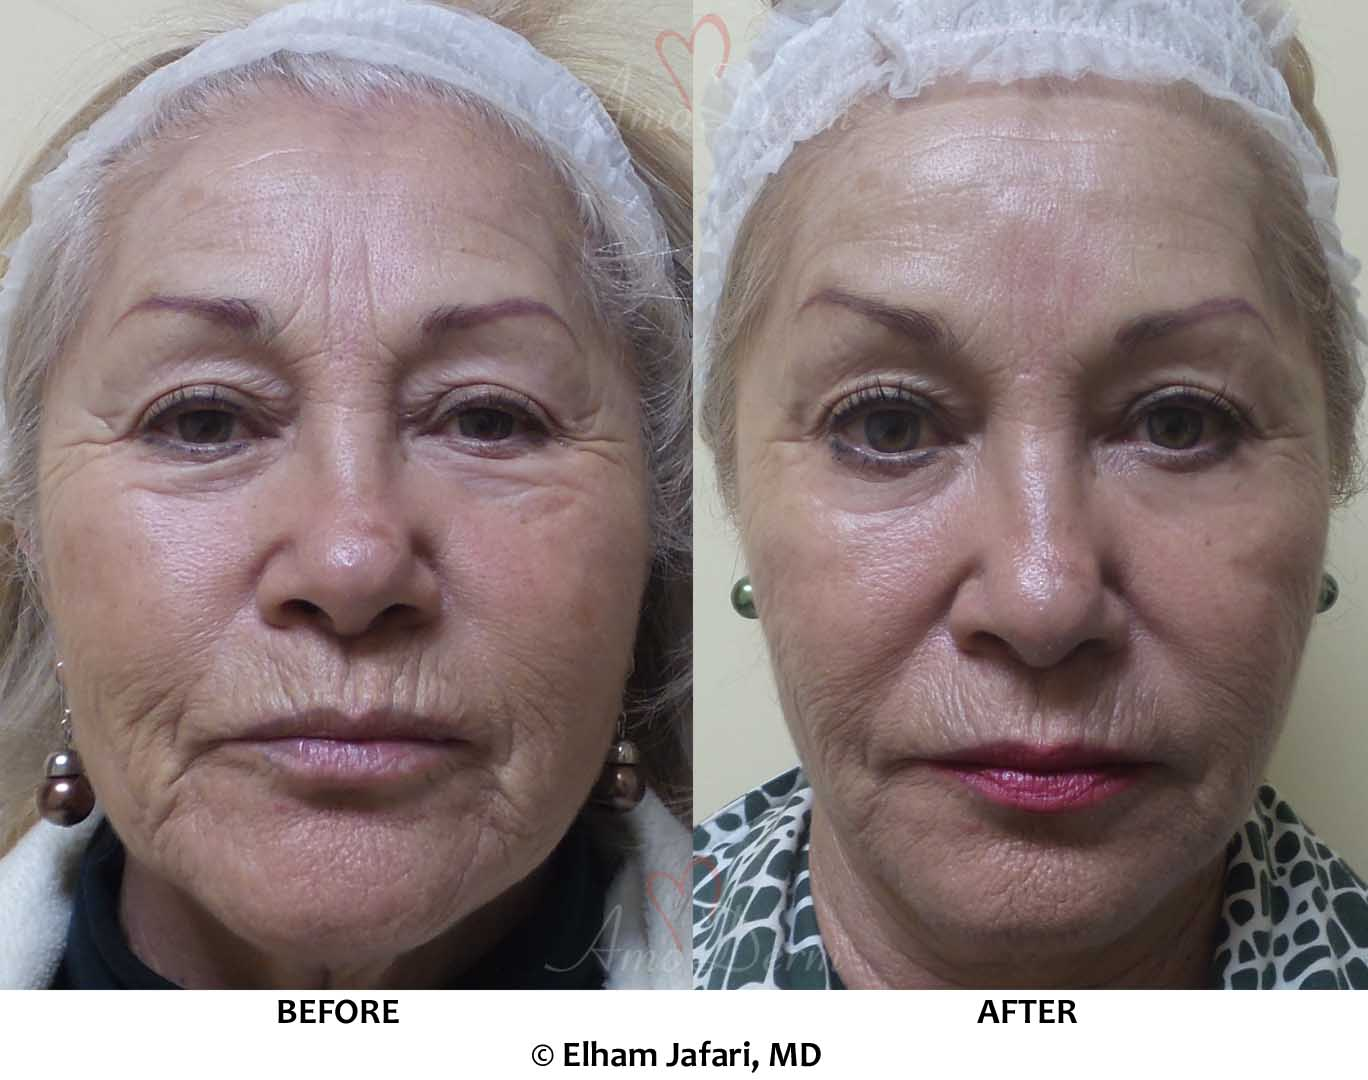 Liquid Facelift & Brow Lift with Botox (or Dysport or Xeomin) in forehead, crow's feet & around mouth (smoker's lines)